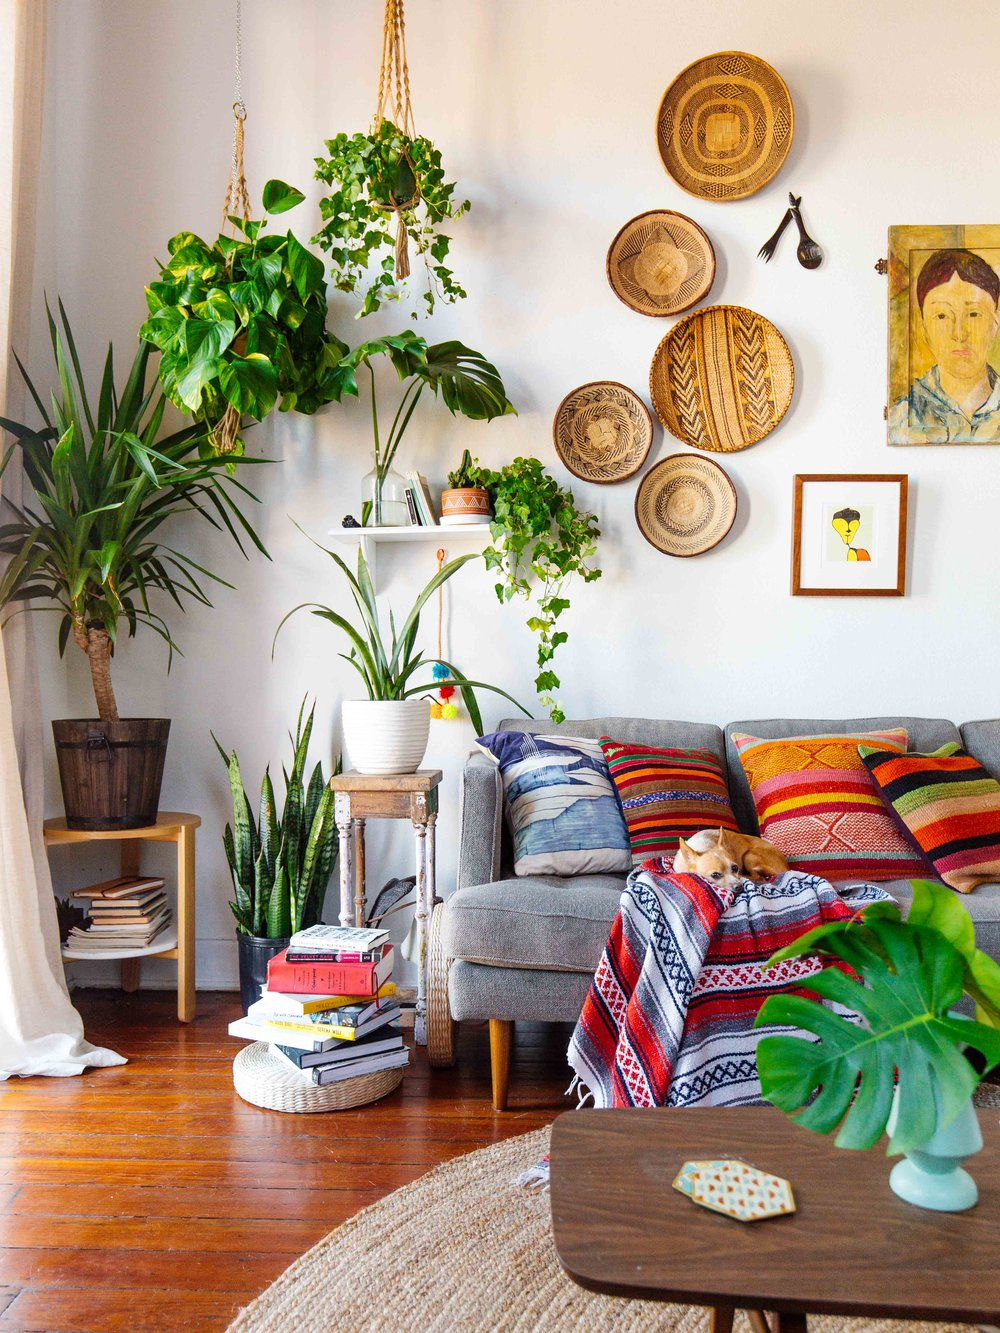 Living room inspiration home filled with vintage decor in Plant room design